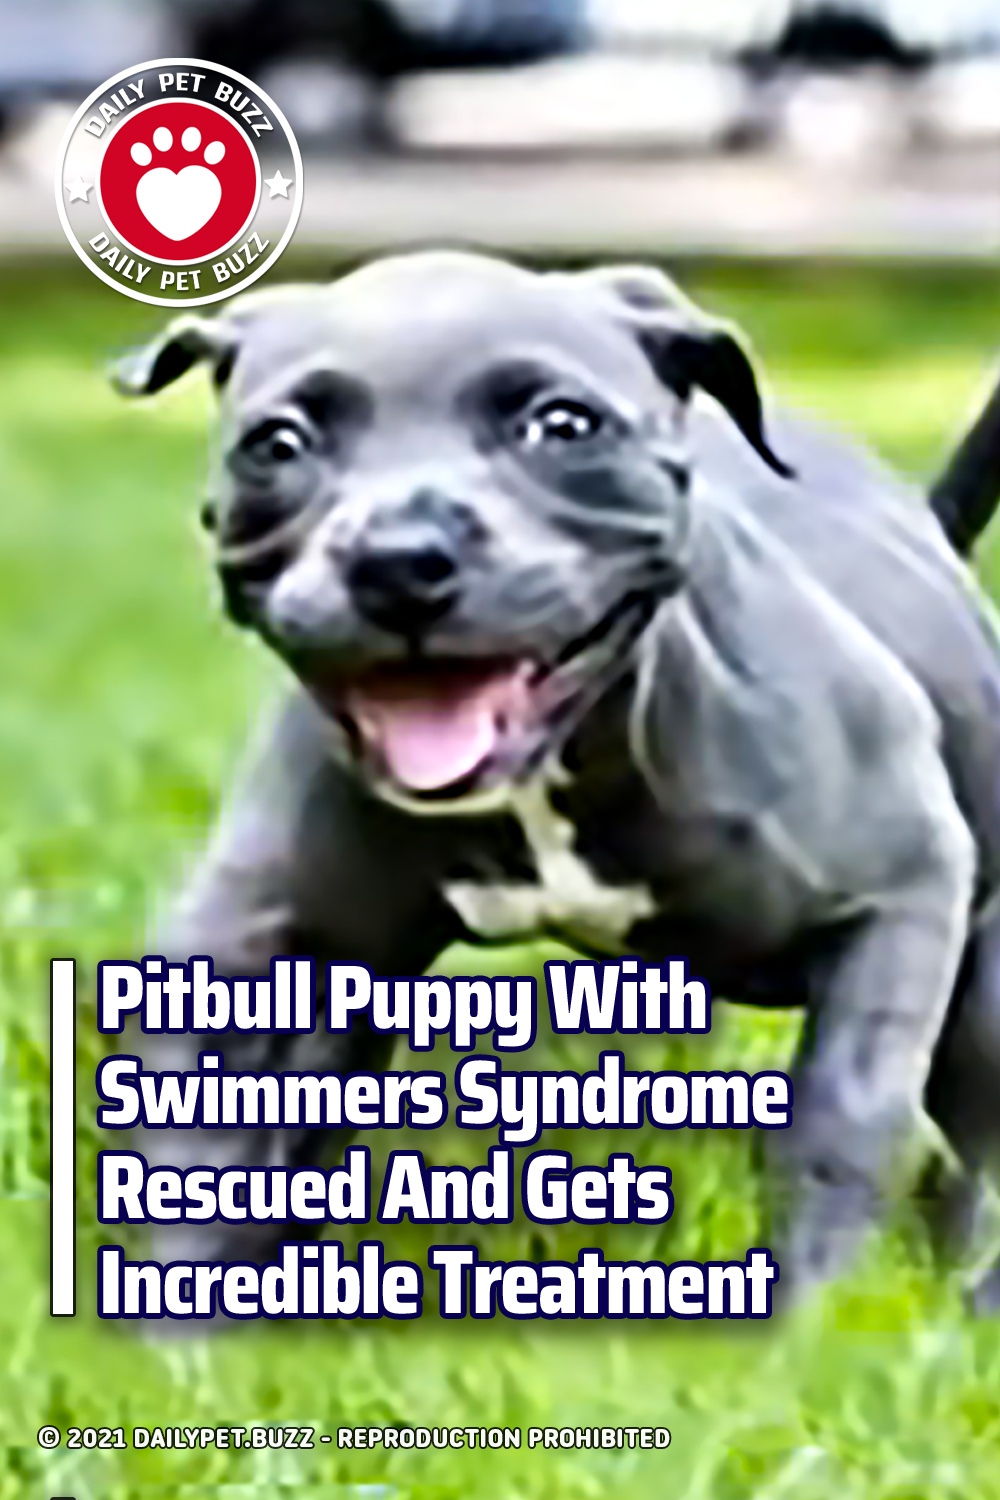 Pitbull Puppy With Swimmers Syndrome Rescued And Gets Incredible Treatment